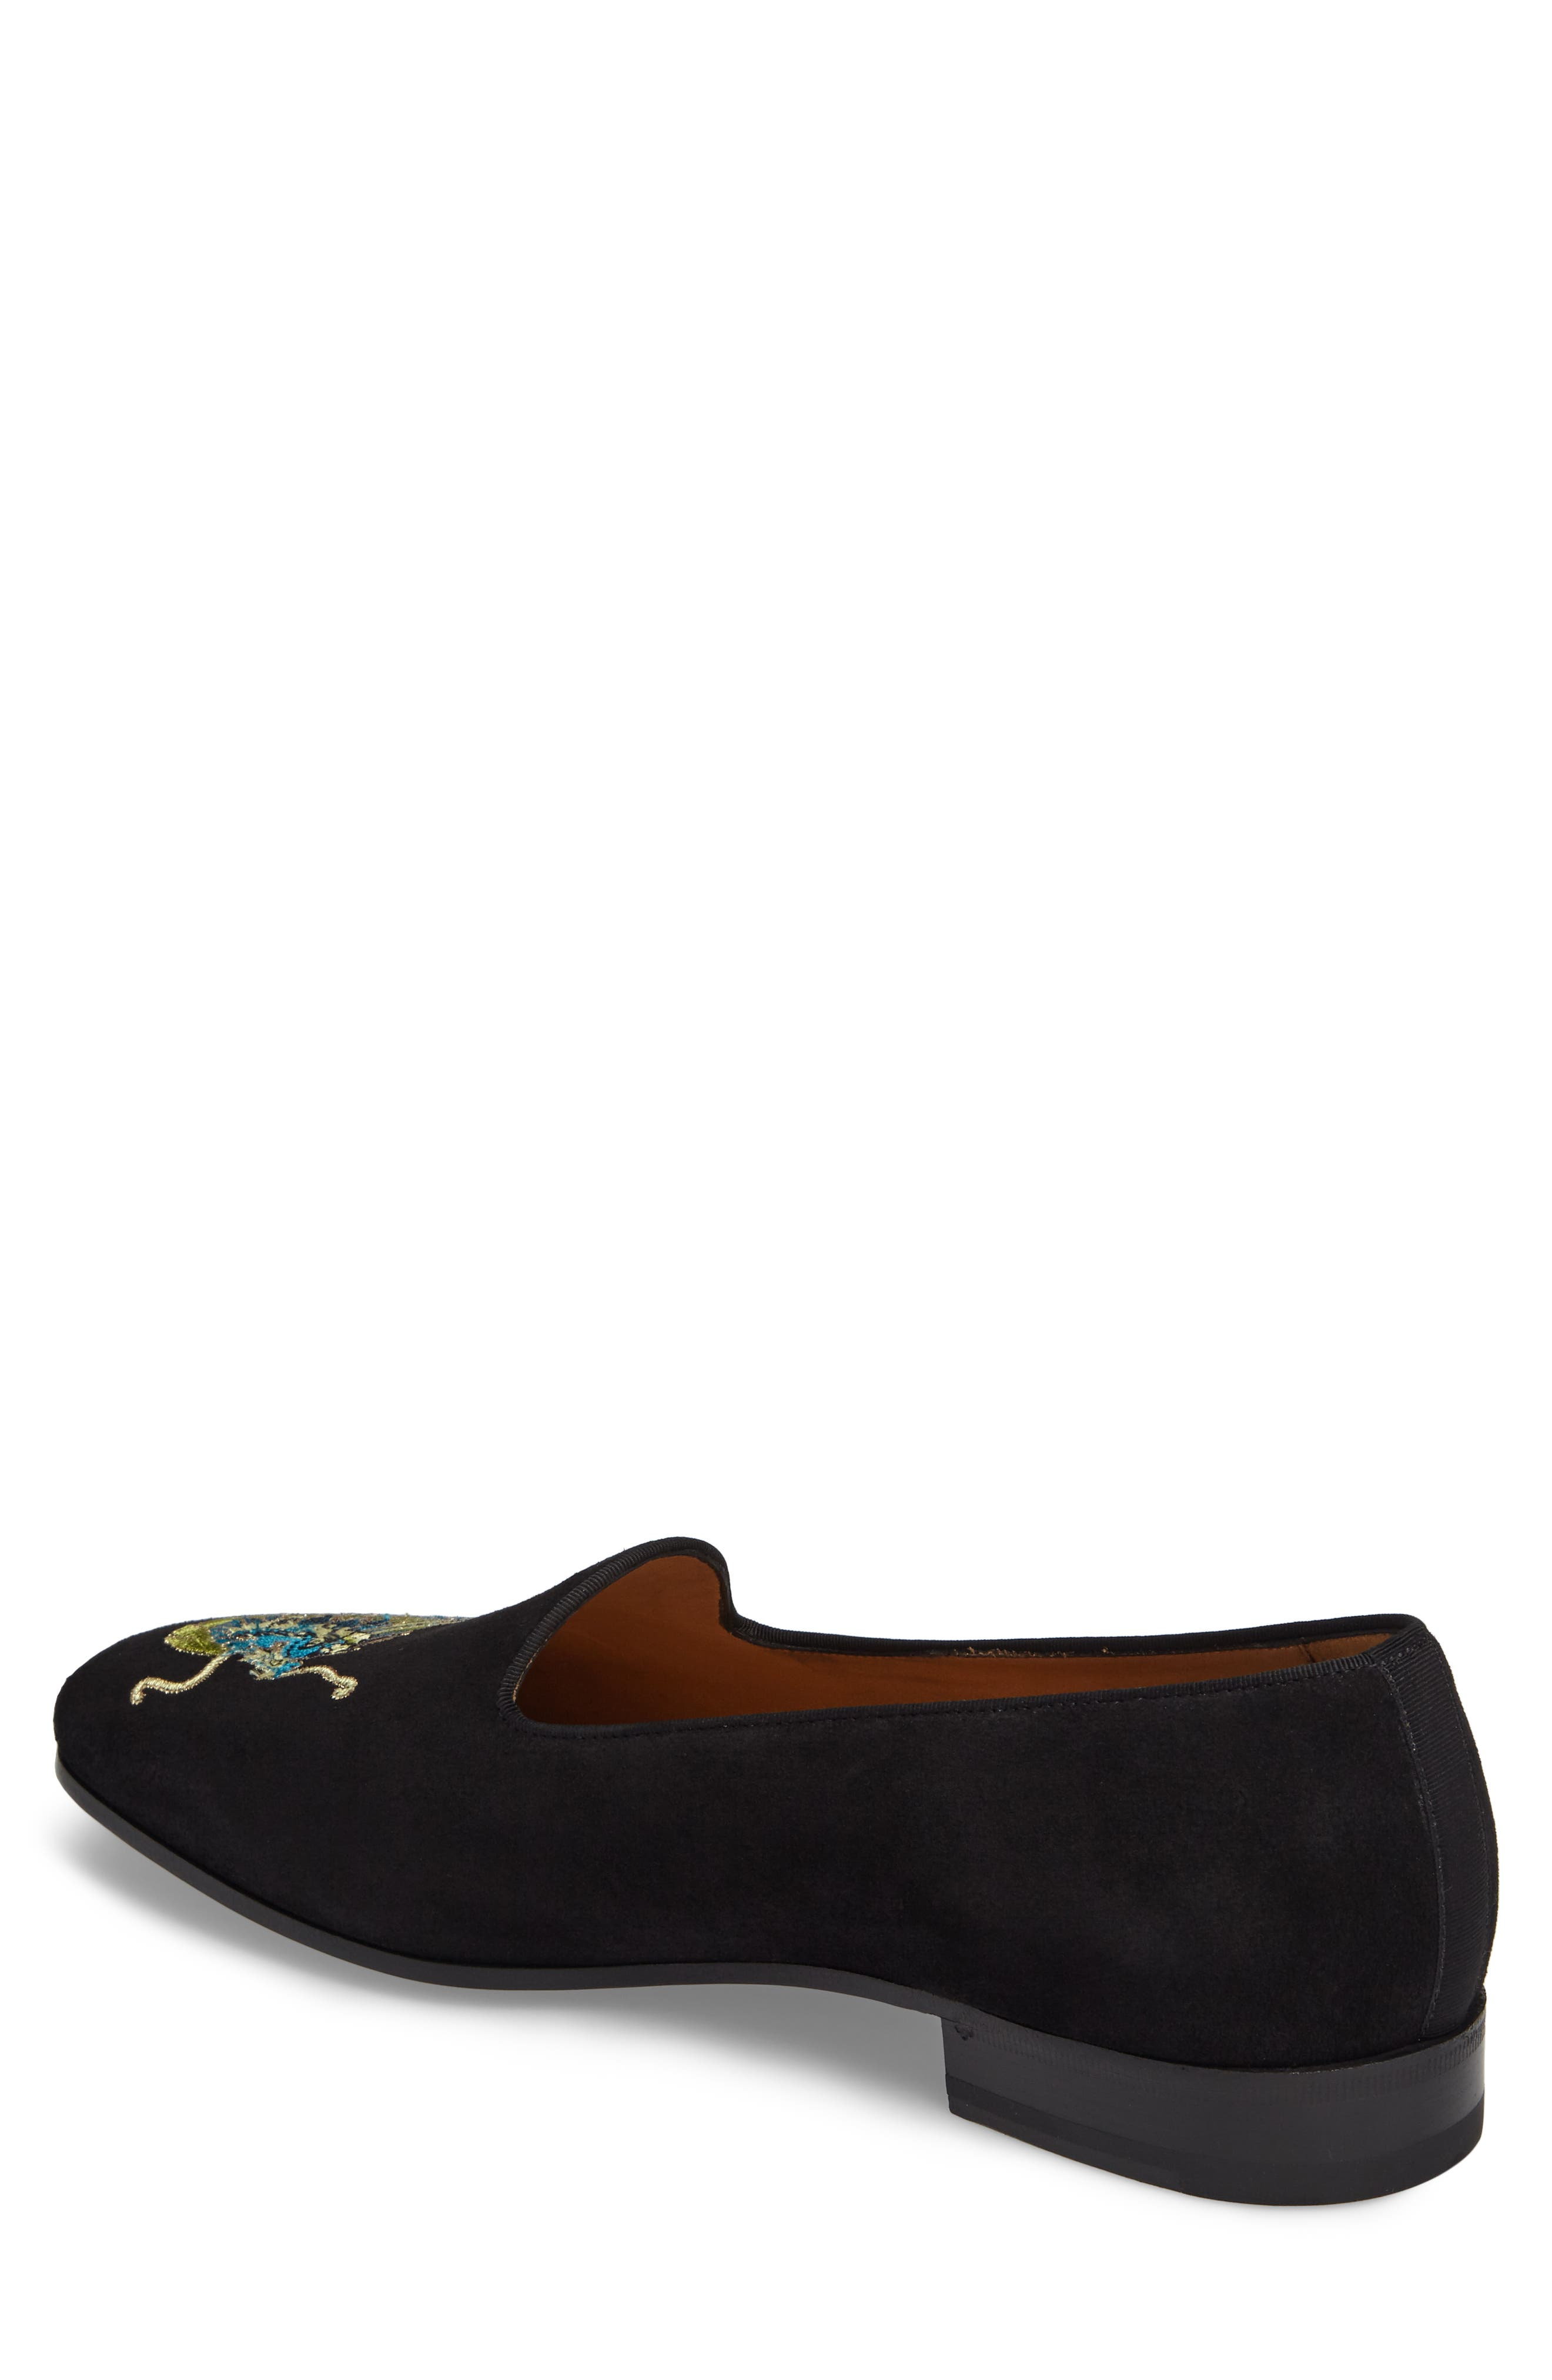 Dragon Embroidered Suede Loafer,                             Alternate thumbnail 2, color,                             BLACK SUEDE